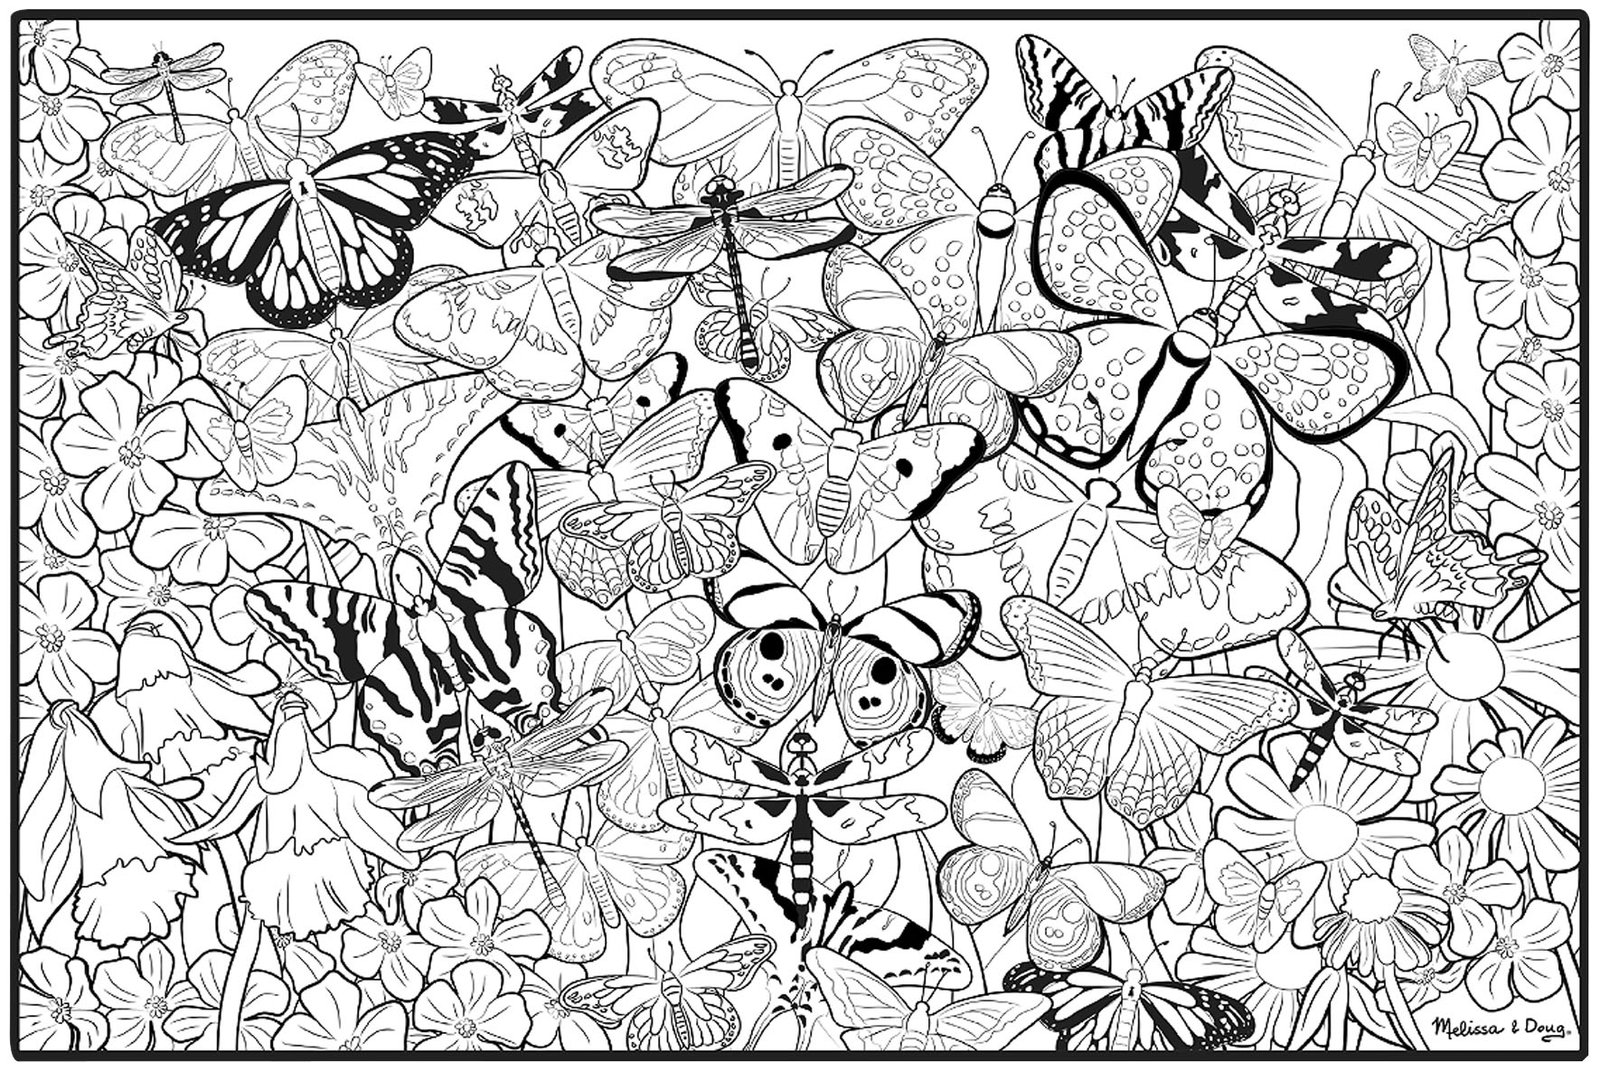 Colouring in free - Coloring Book For Adults Free Printable Free Printable Adult Coloring Pages Butterflies